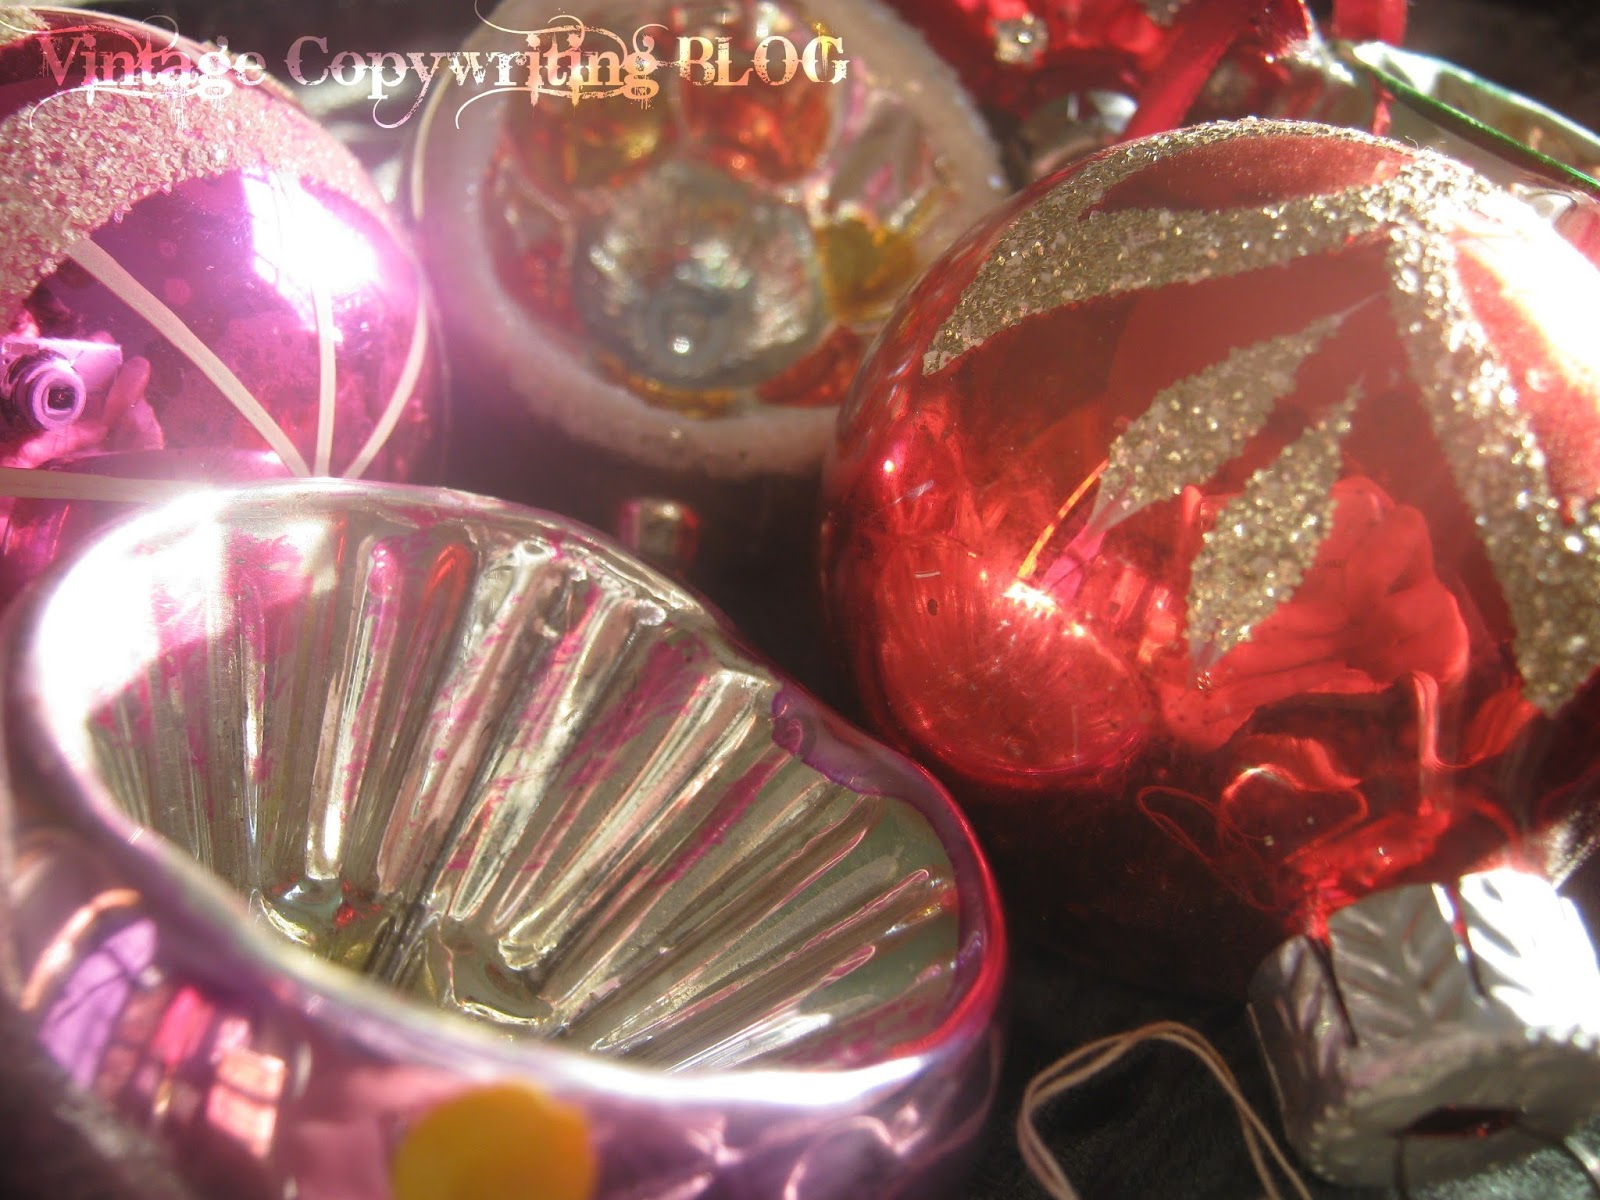 Vintage christmas decorations 1950s - Vintage Christmas Decorations 1950s 44